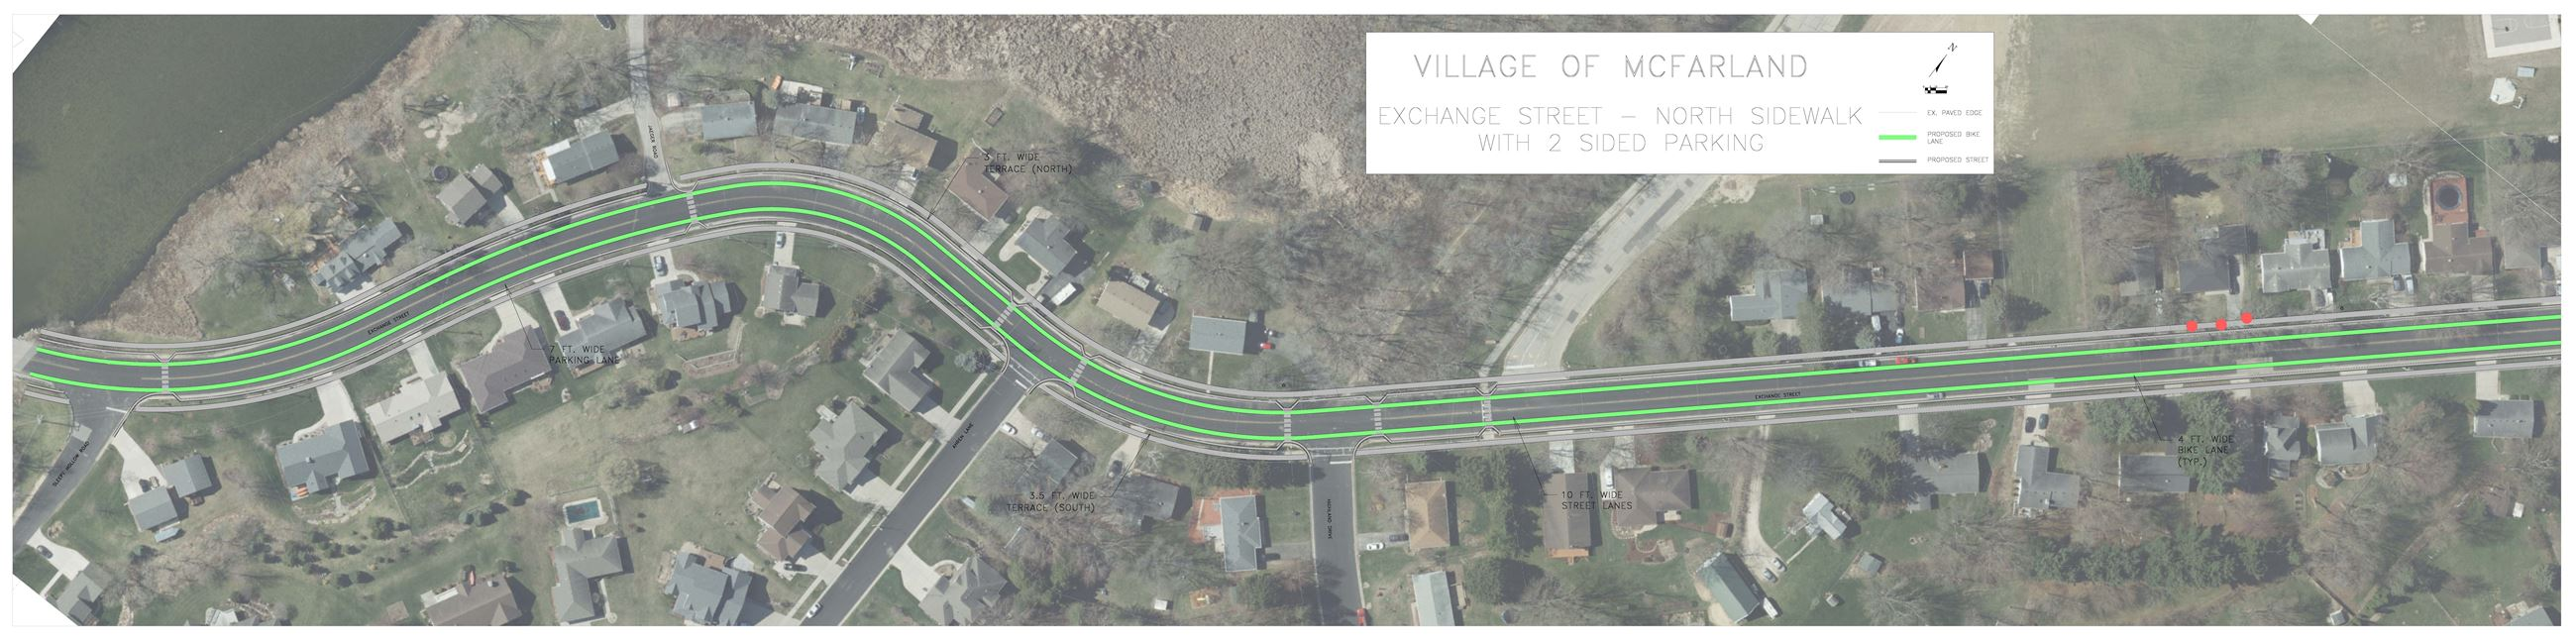 Eastern map of Exchange Street showing north sidewalk with 2-sided parking and proposed bike lane